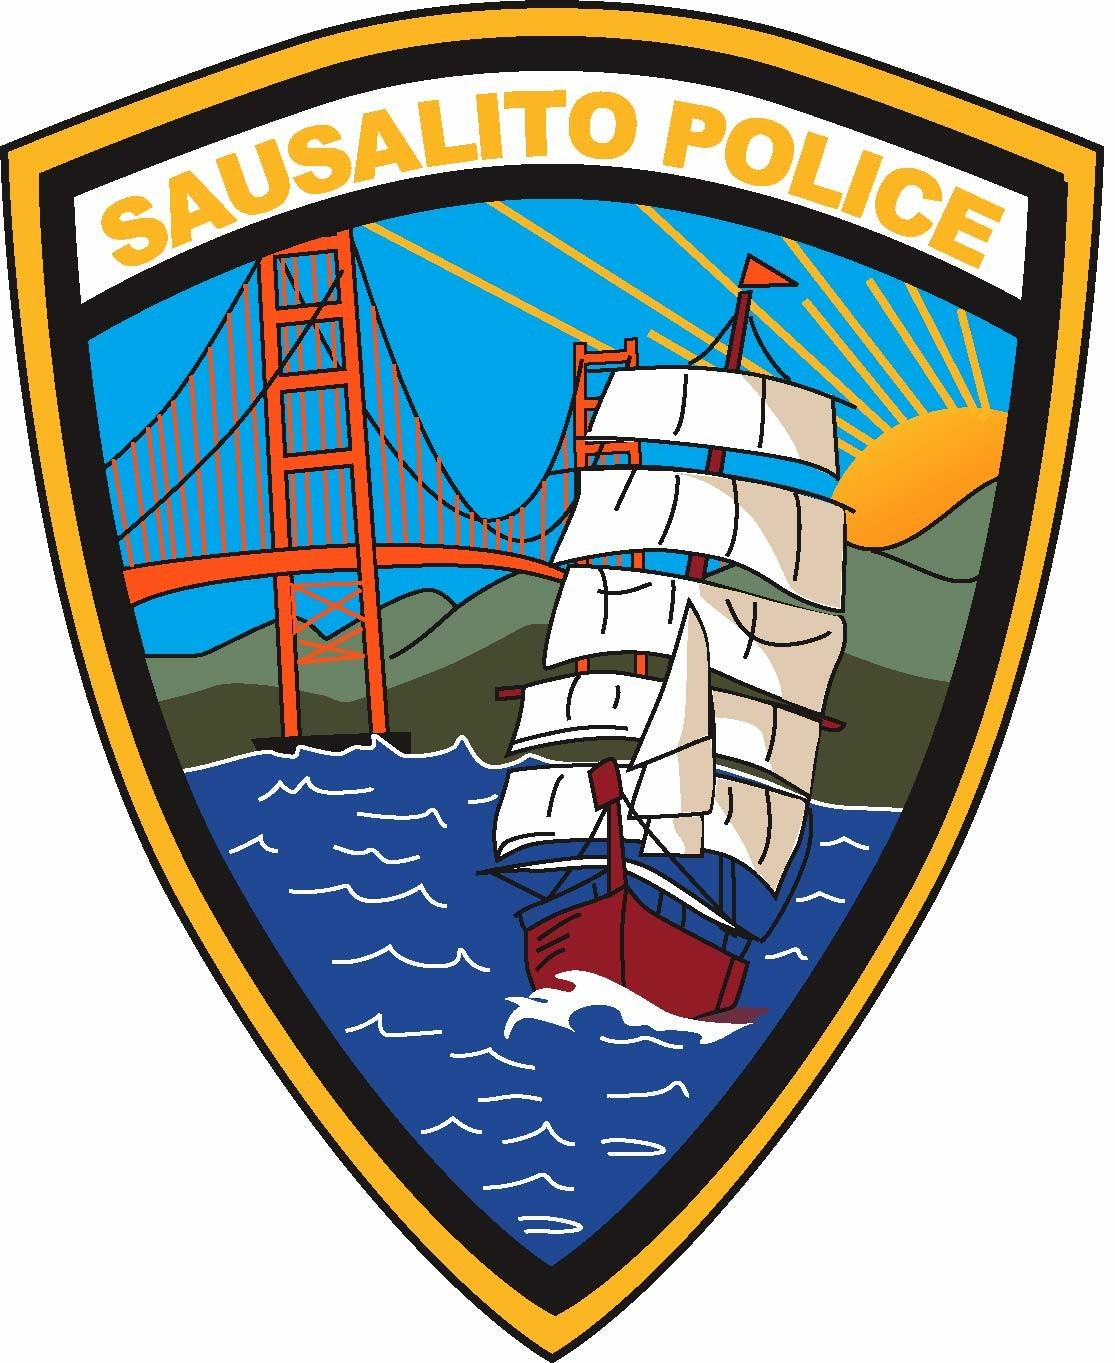 Sausalito Police Patch